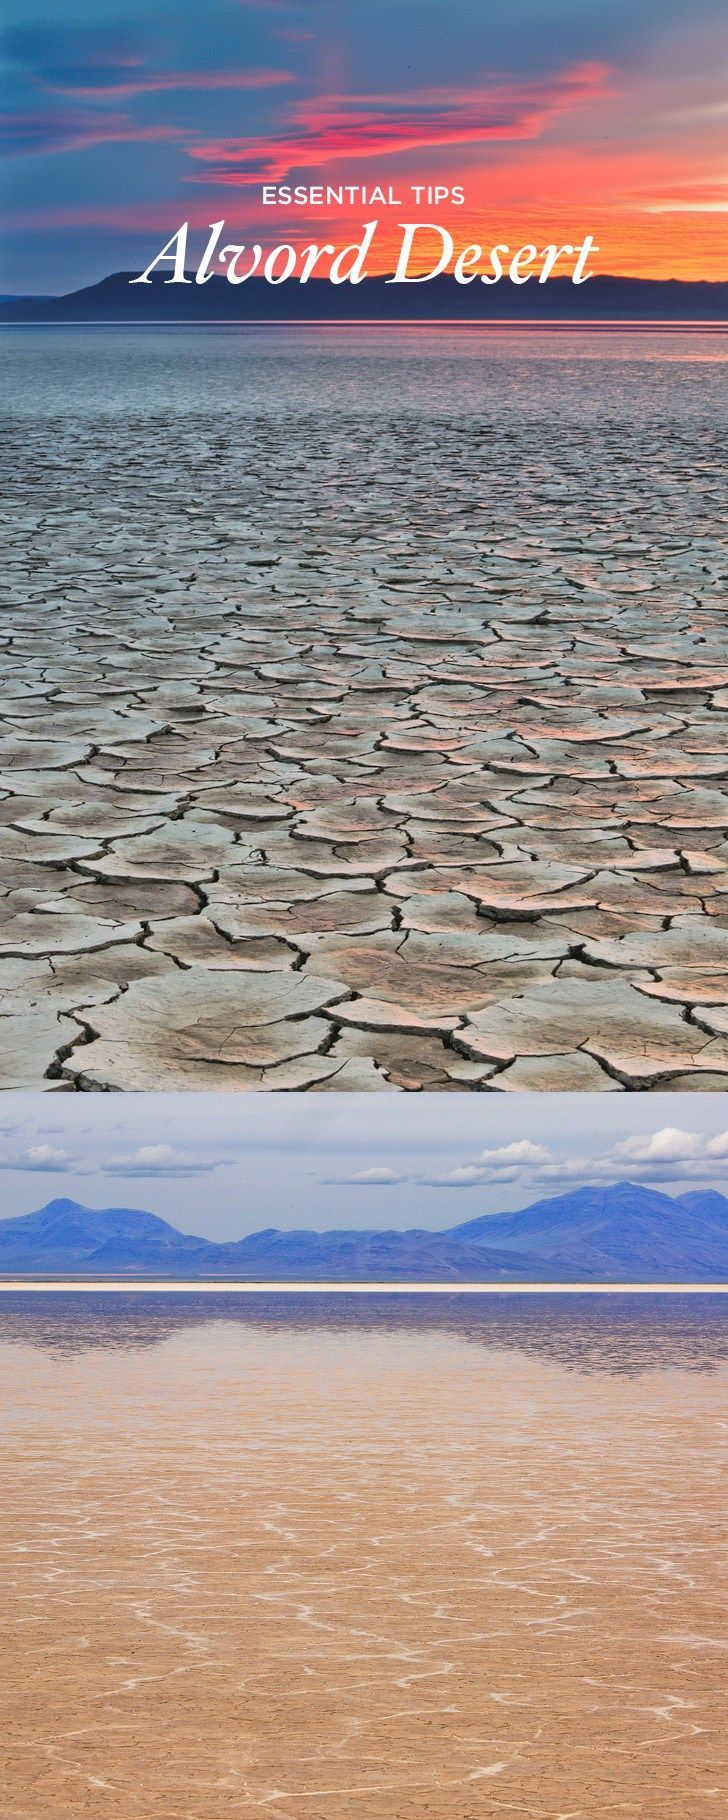 Alvord Desert Oregon Map.Your Essential Guide To Alvord Desert Oregon Oregon Travel Blogger